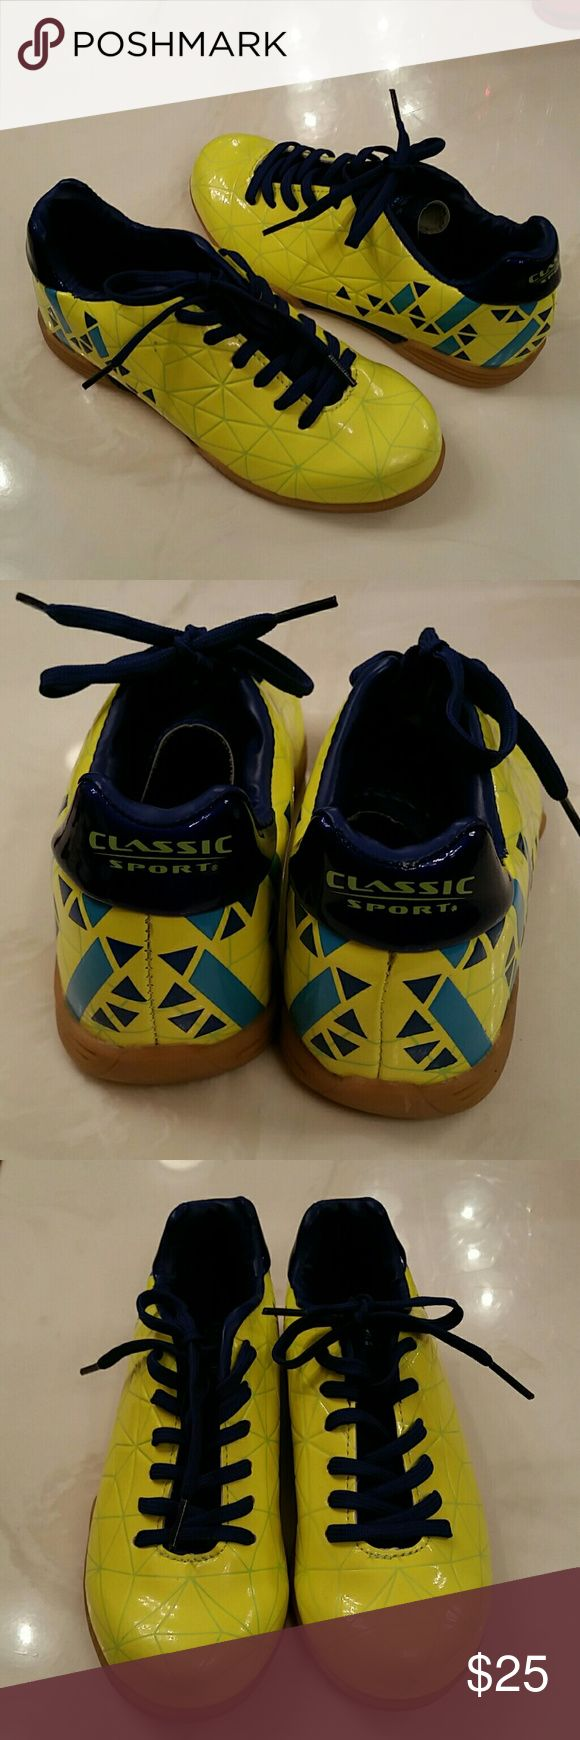 Kids Indoor Soccer shoes Can be for boy or girl. Yellow and blue. Only worn once! Nearly brand new! Classic Sport Shoes Sneakers